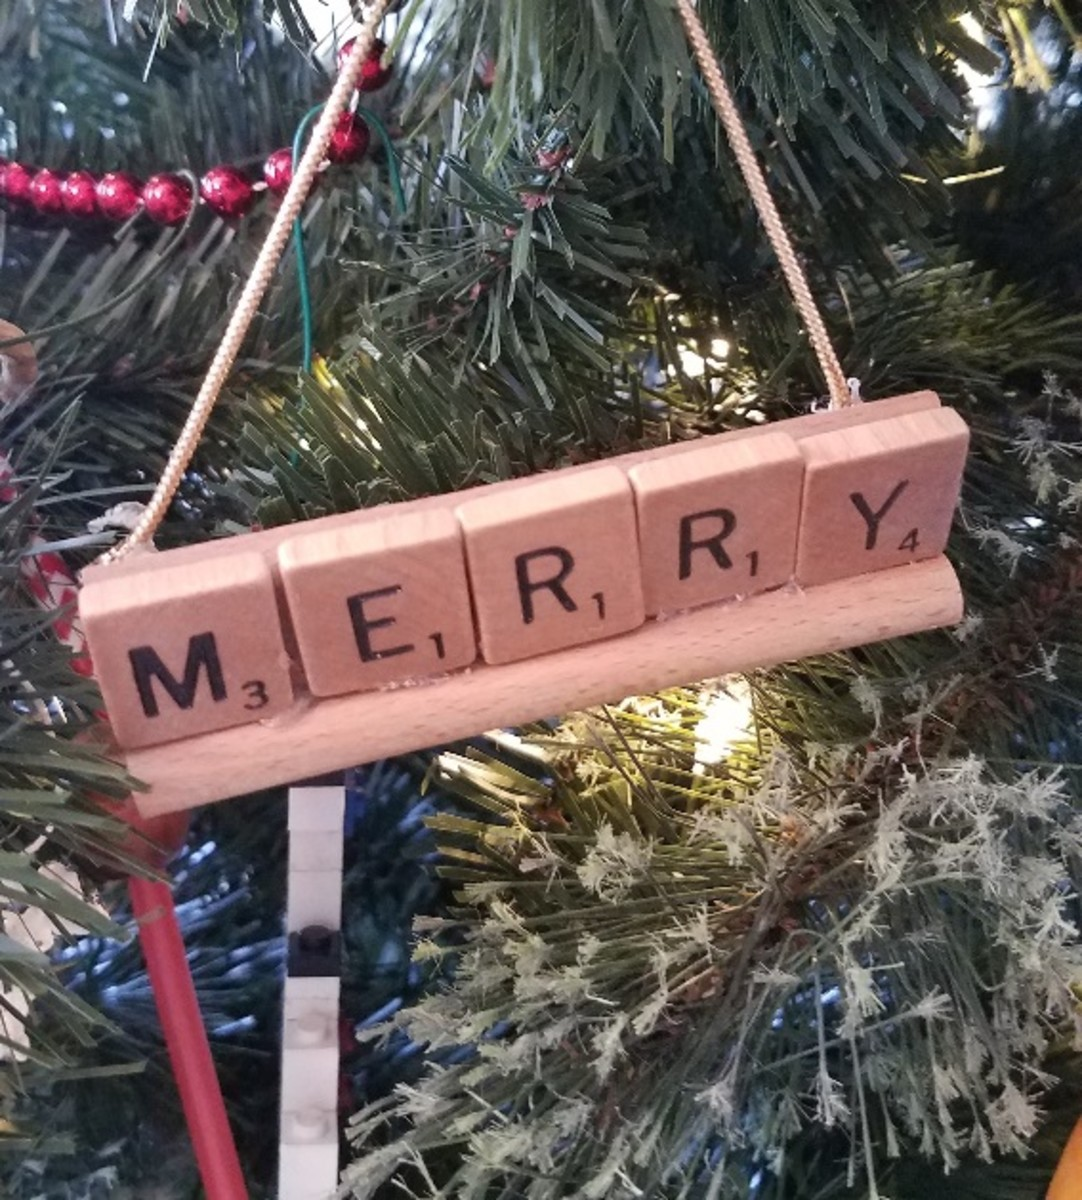 You can use Scrabble letters to spell a variety of holiday-themed words.